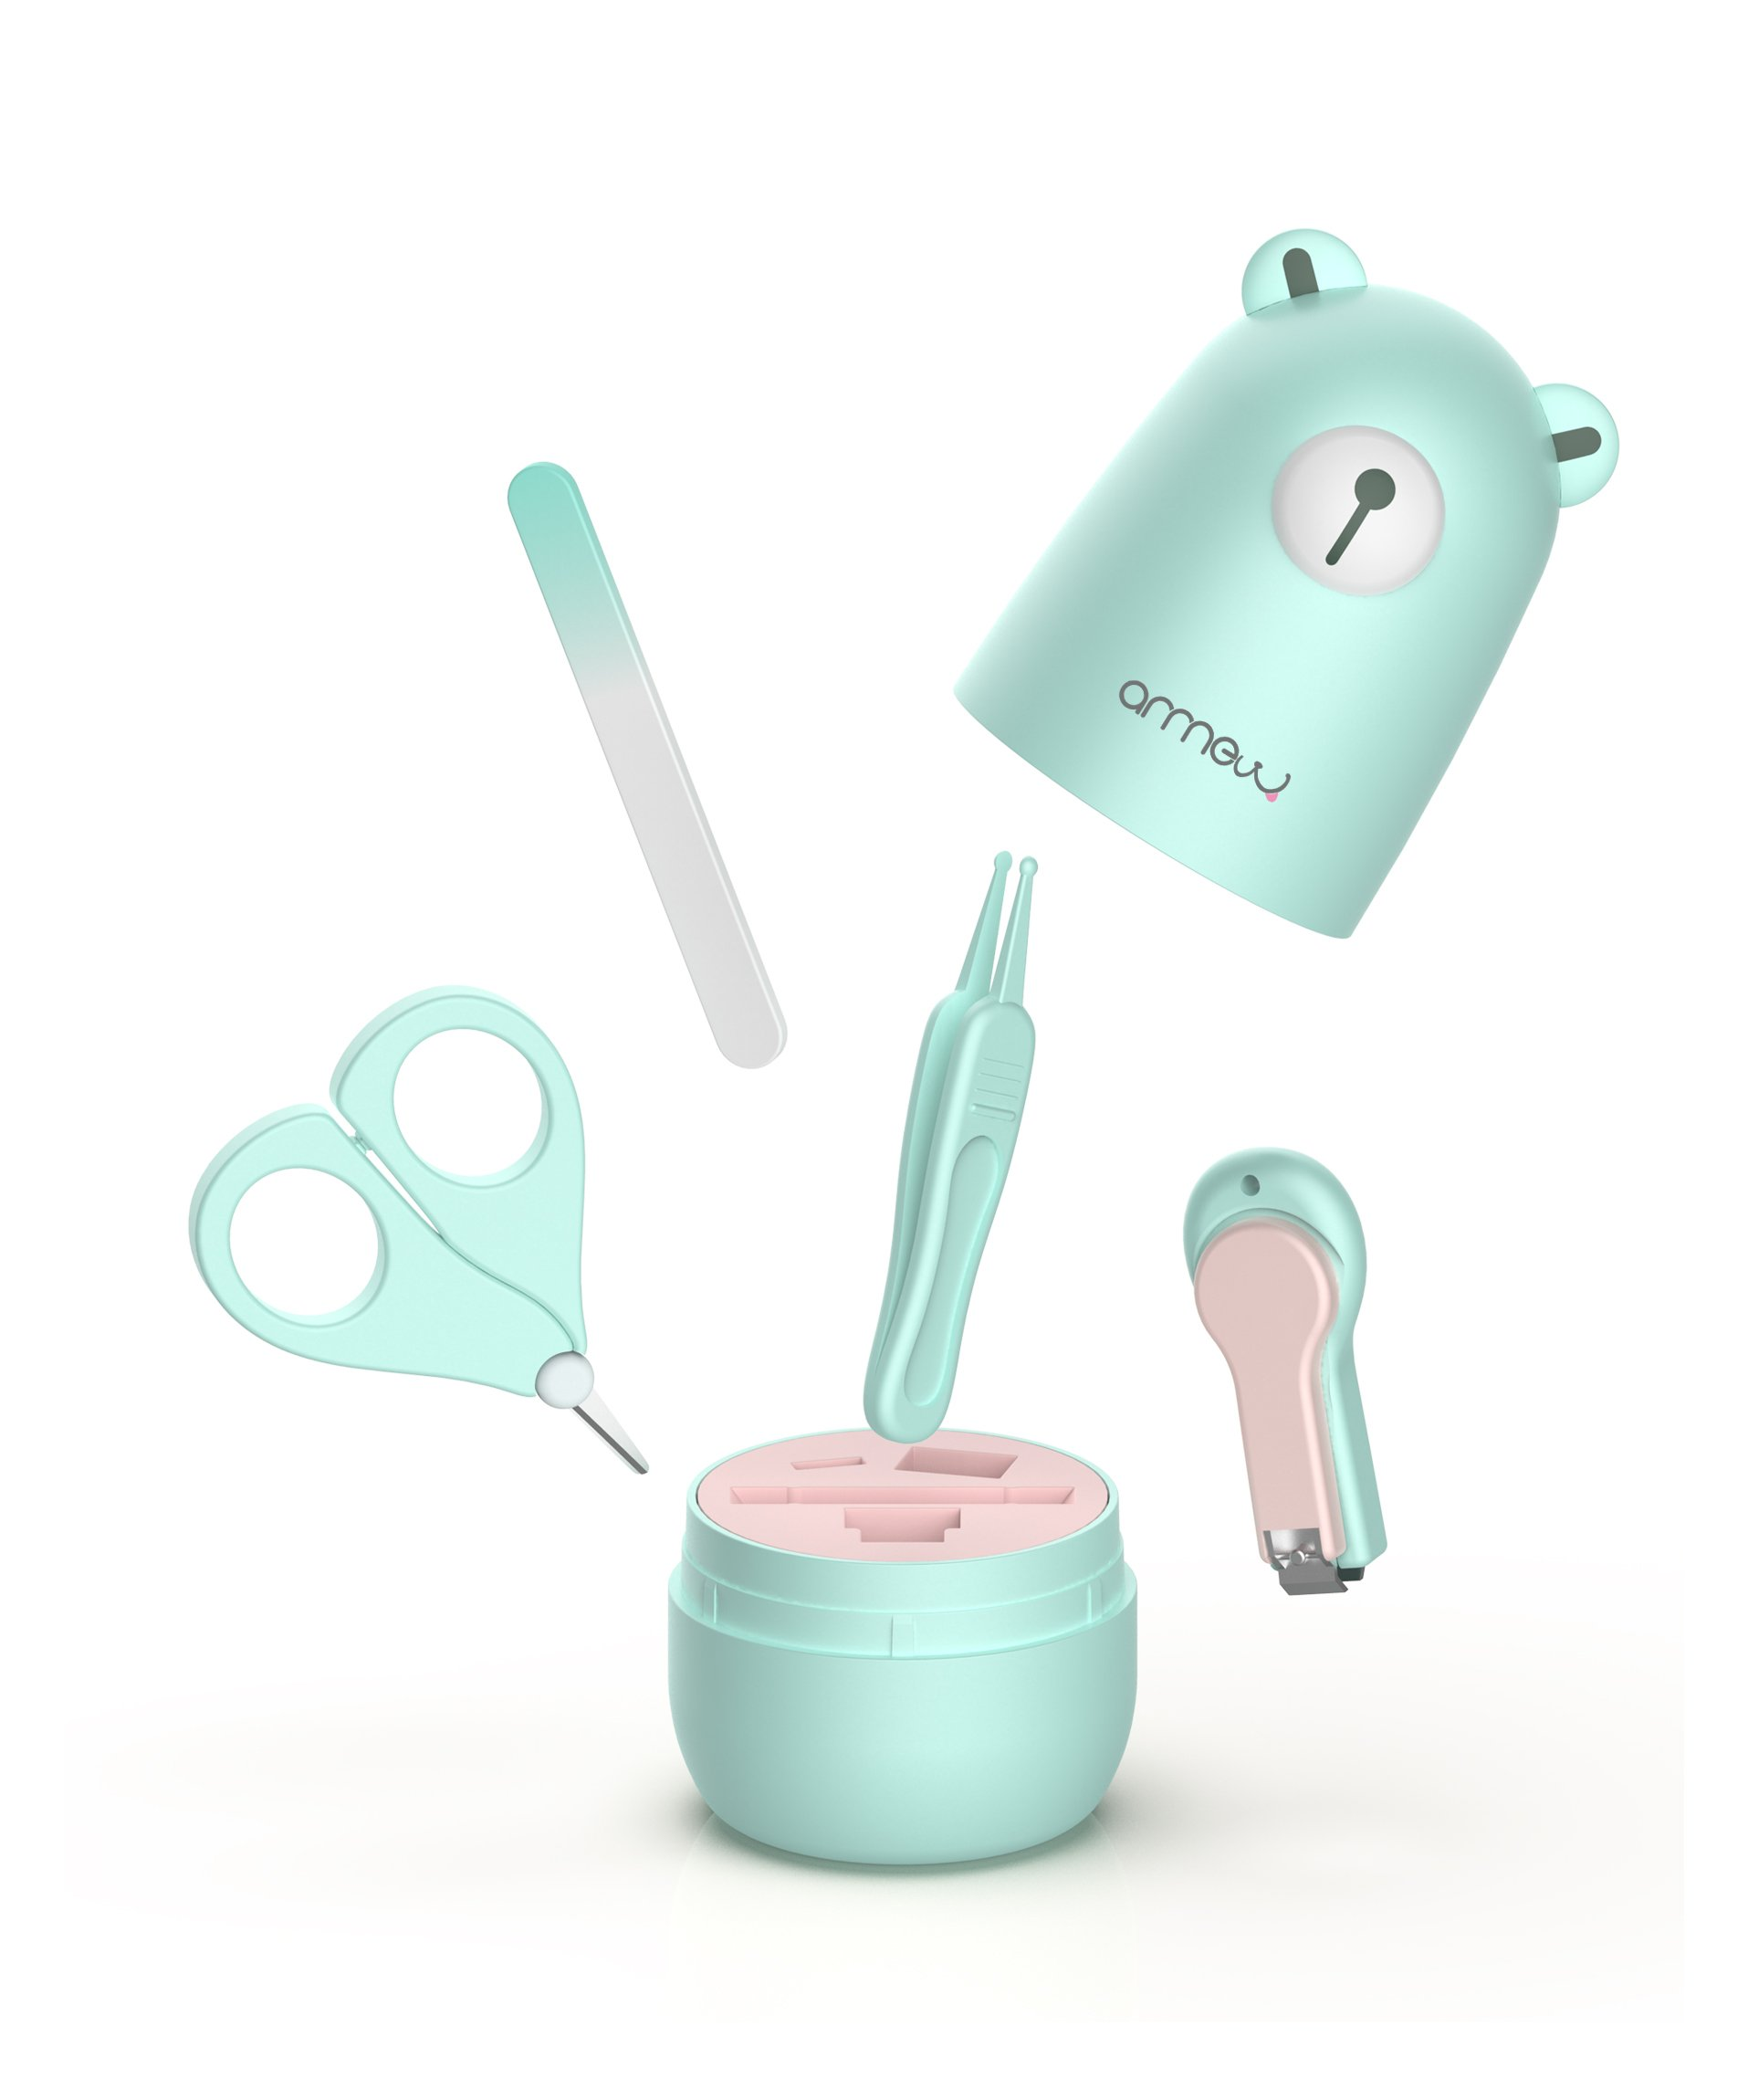 Amazon Com Baby Manicure Set By Arrnew 4 In 1 Grooming